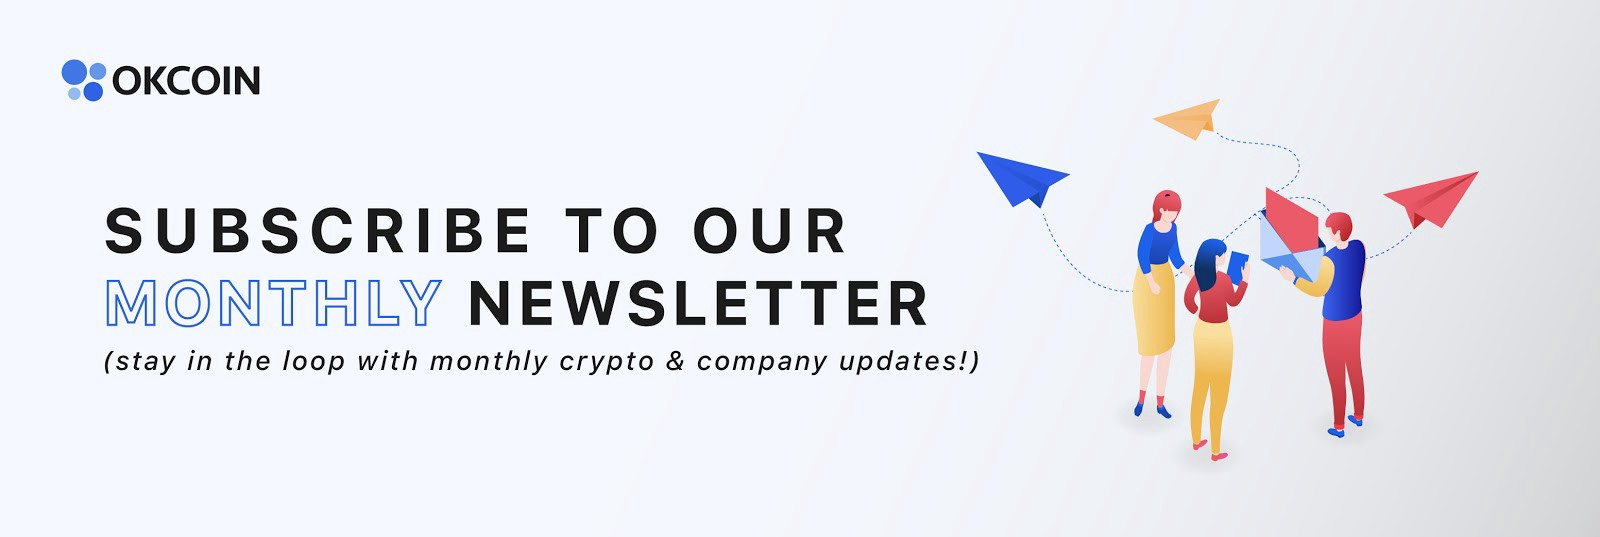 Sign-up for OKCoin's newsletter - OK Let's Chat Episode on COVID-19 Initiatives in San Francisco